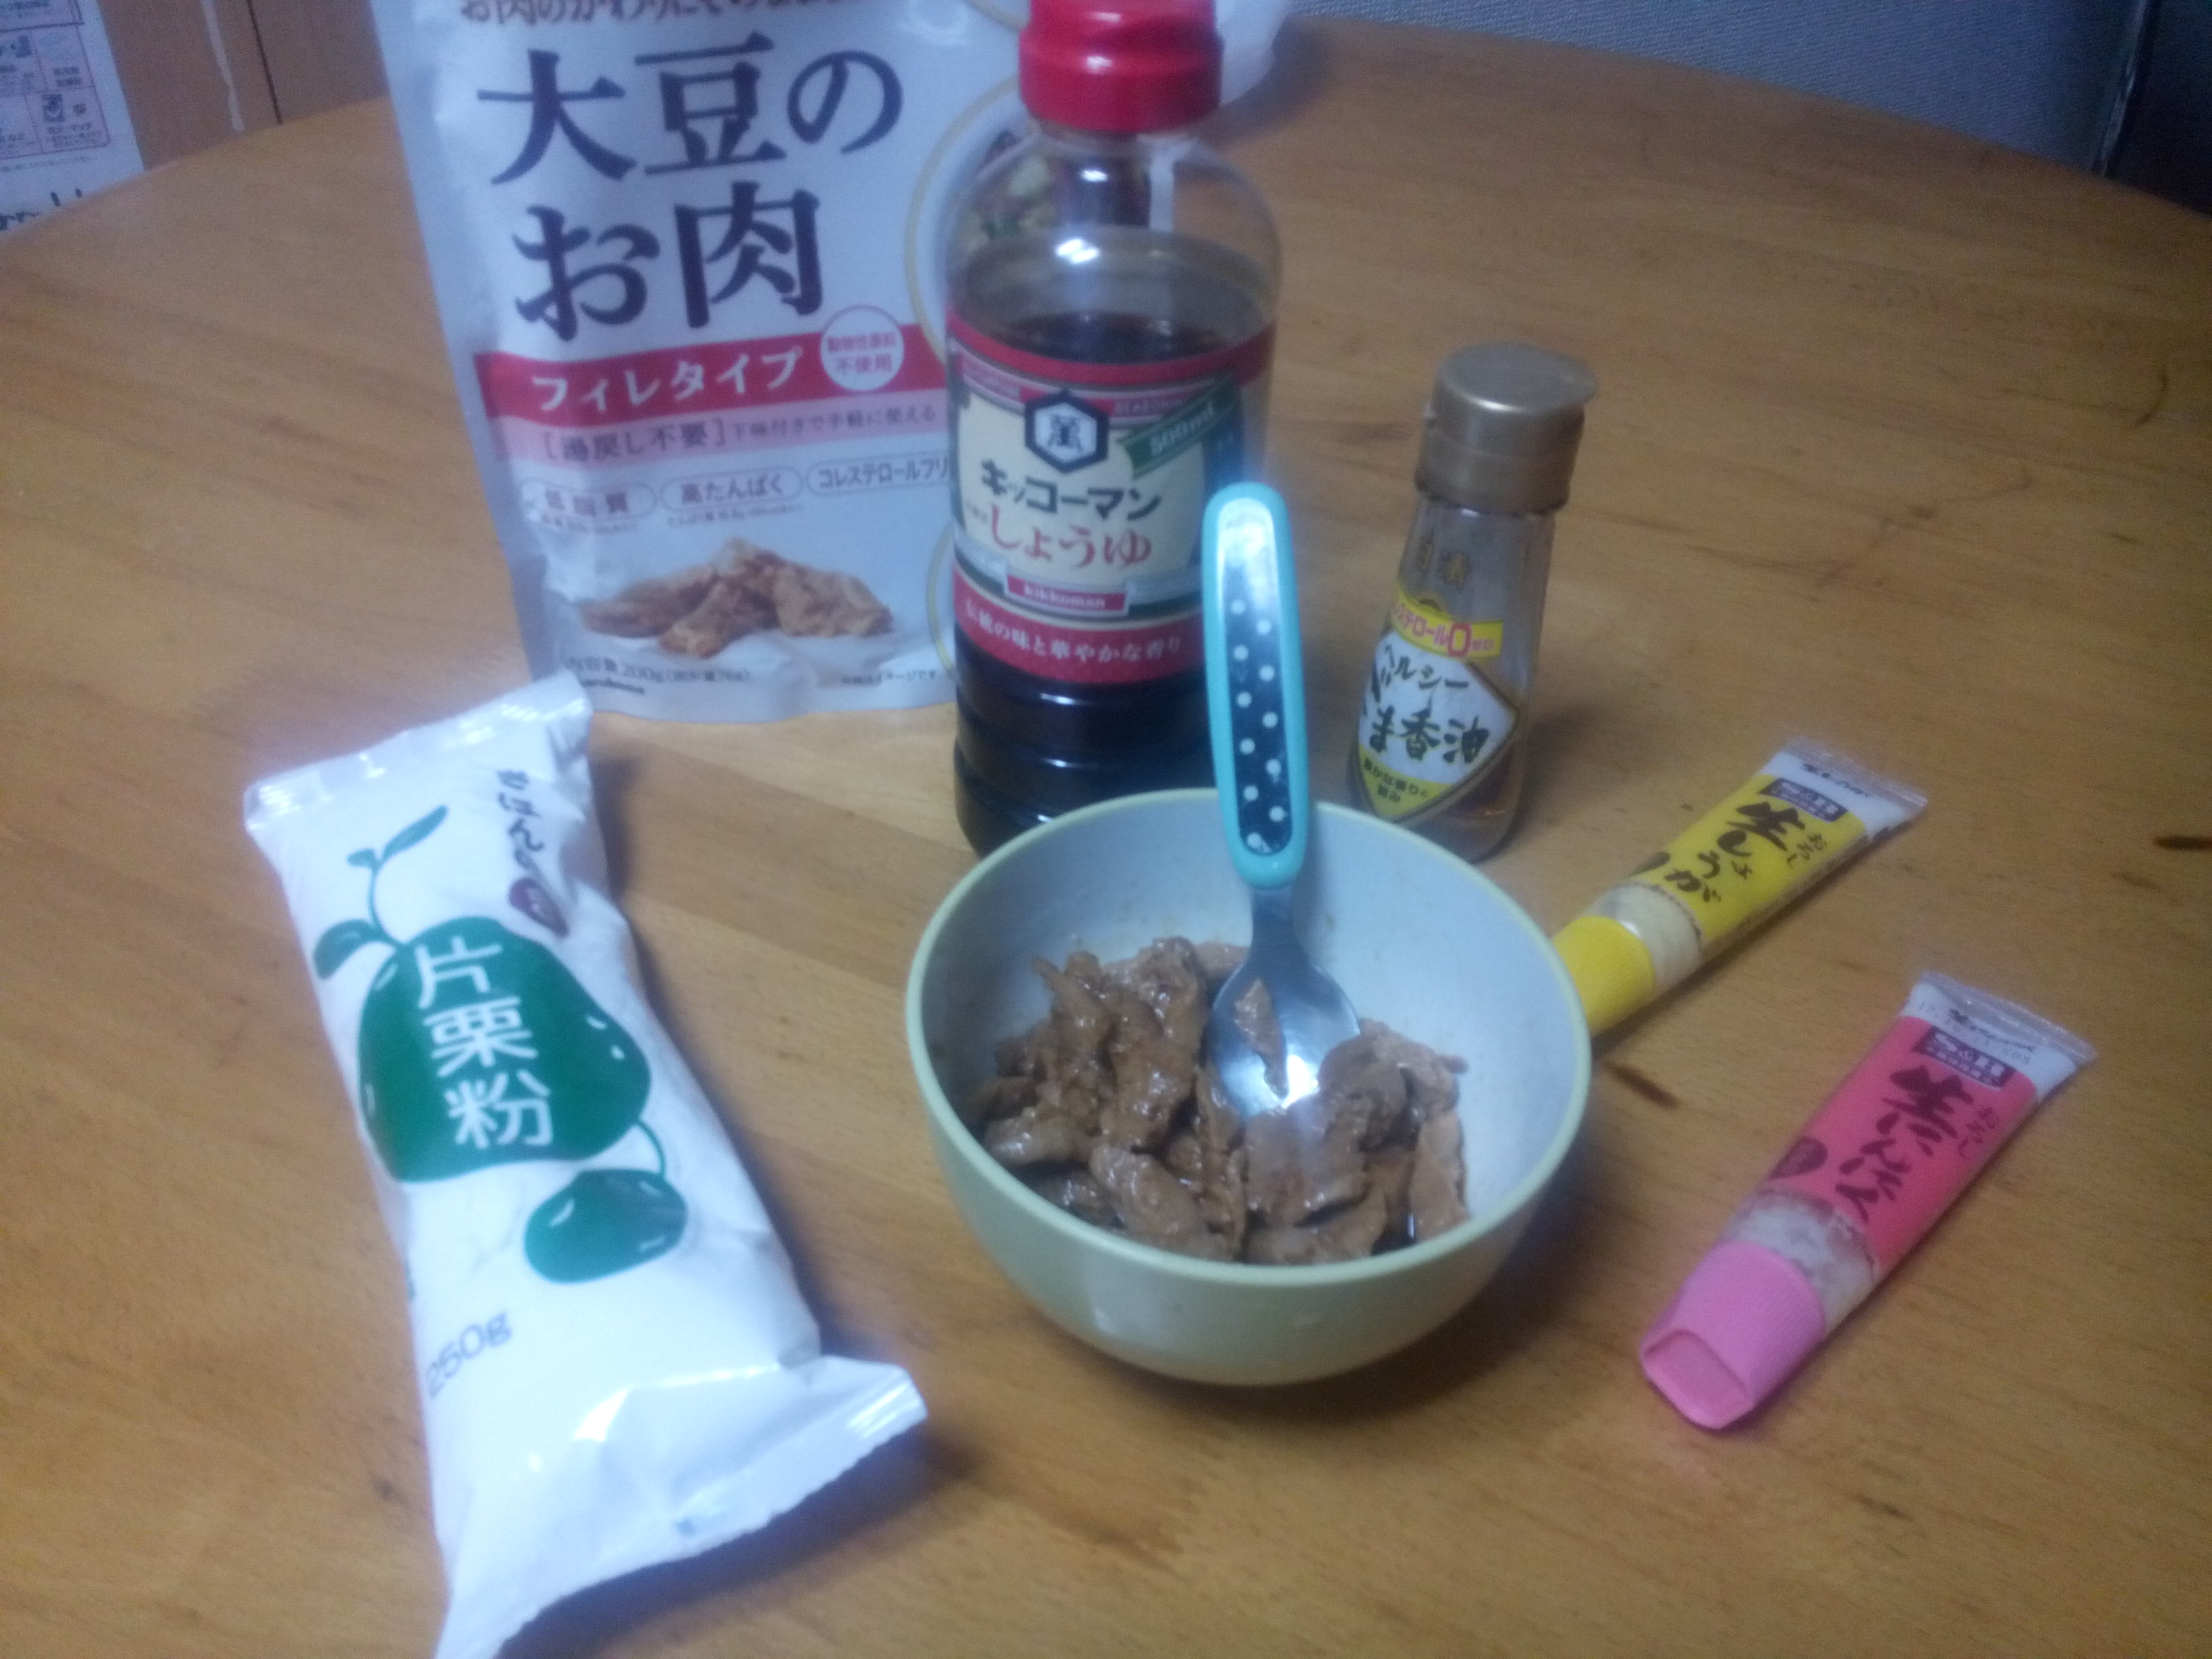 Fried soy meat ingredients